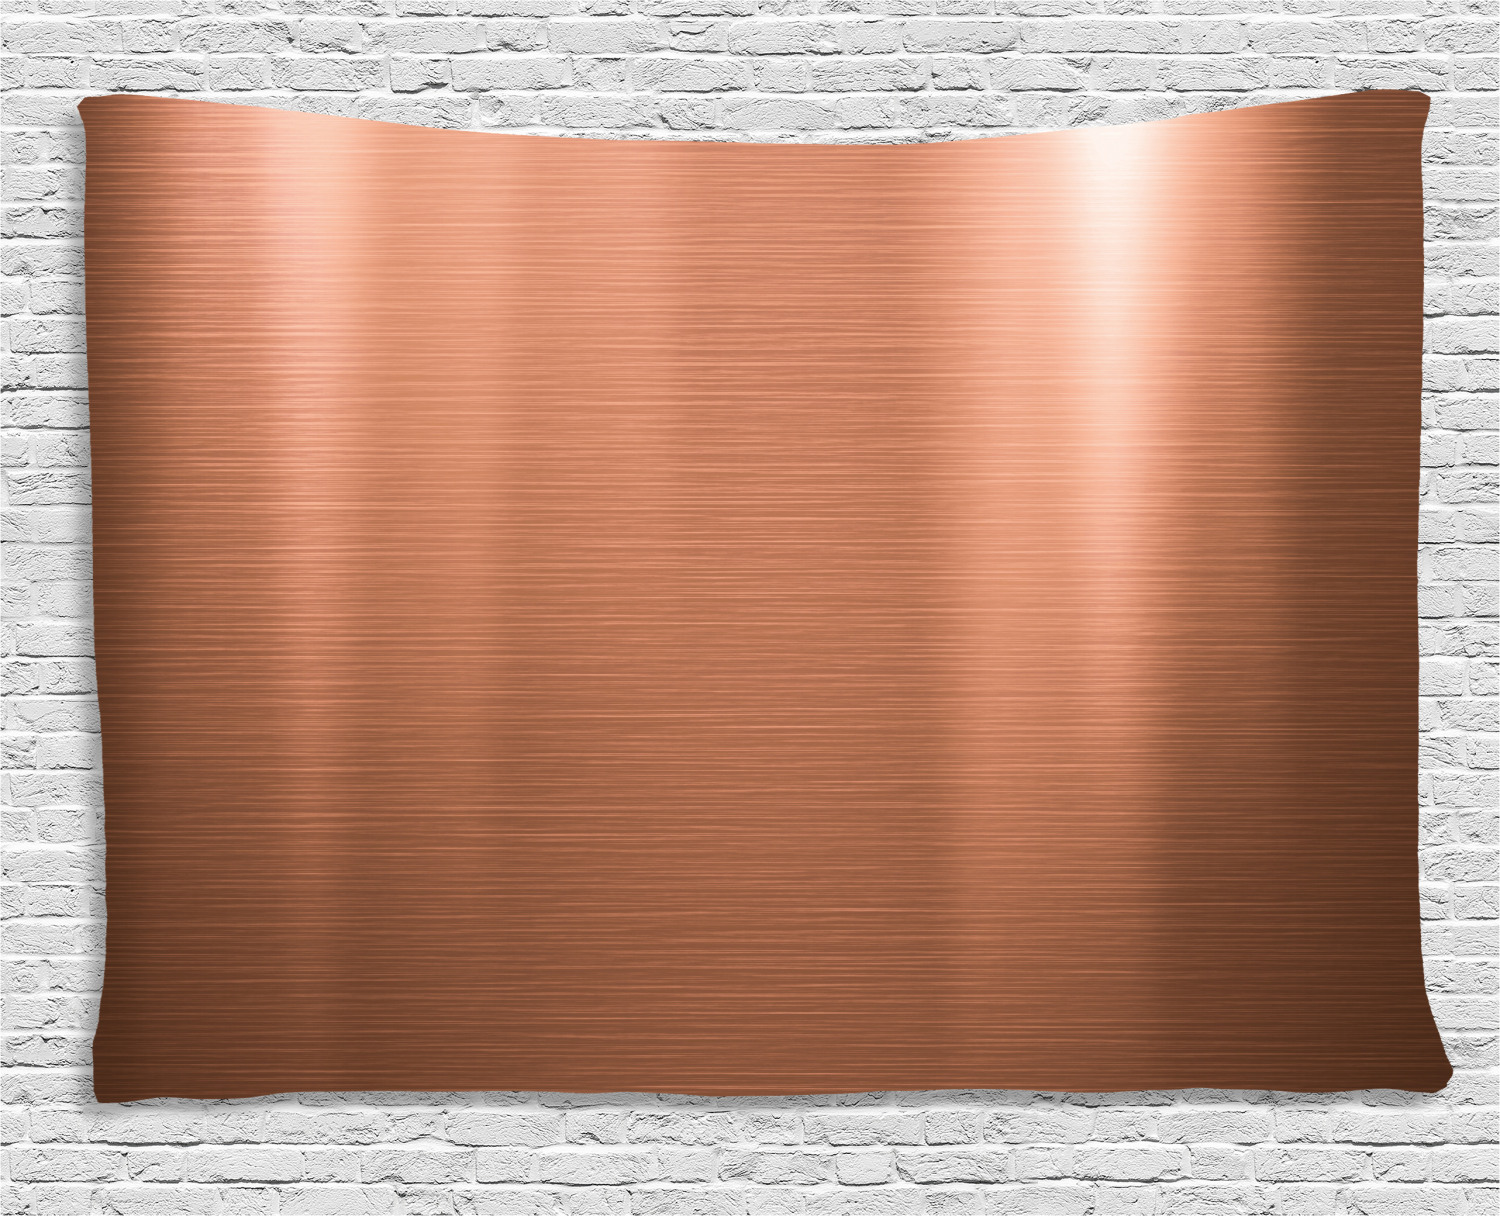 Copper Decor Tapestry Brushed Copper Plate Facade Image Tough Industrial Element Modern Wall Hanging For Bedroom Living Room Dorm Decor 80w X 60l Inches Bronze Light Bronze By Ambesonne Walmart Com